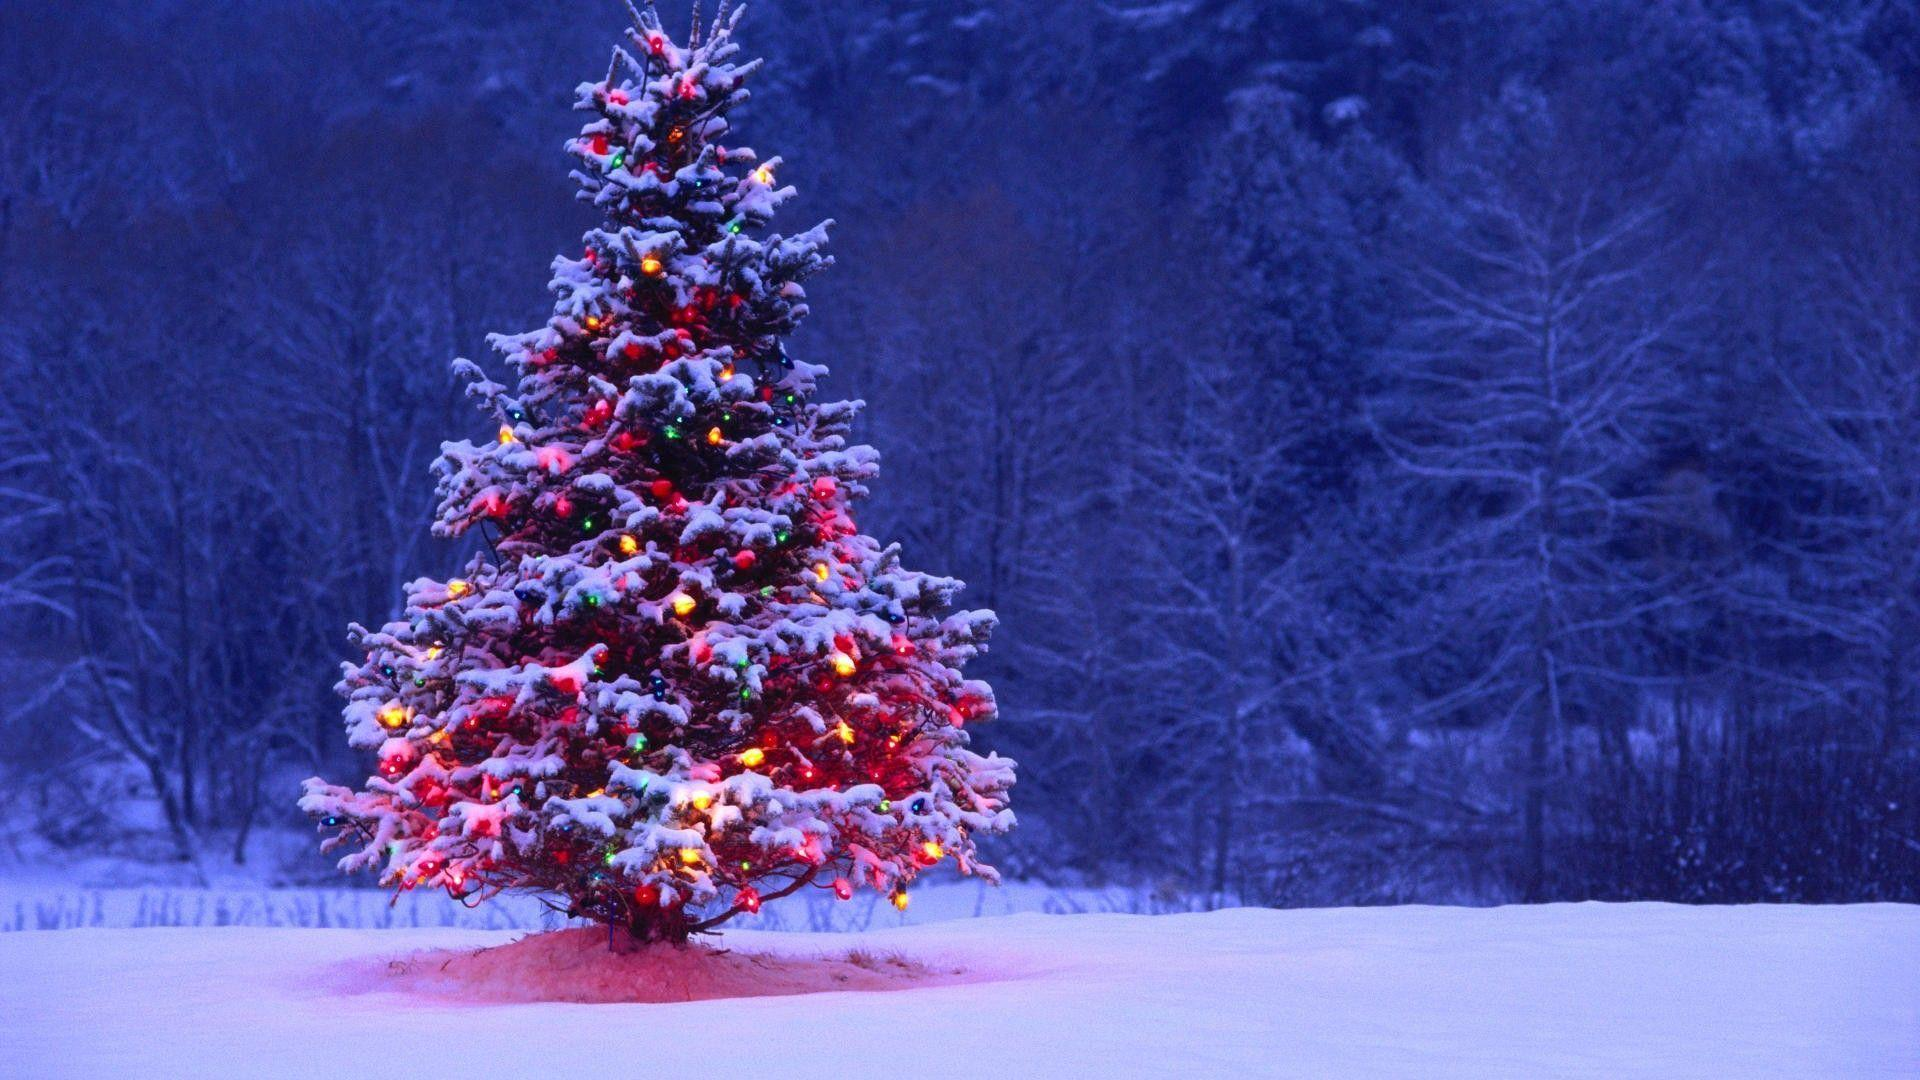 Christmas Hd Wallpapers Wallpaper Cave